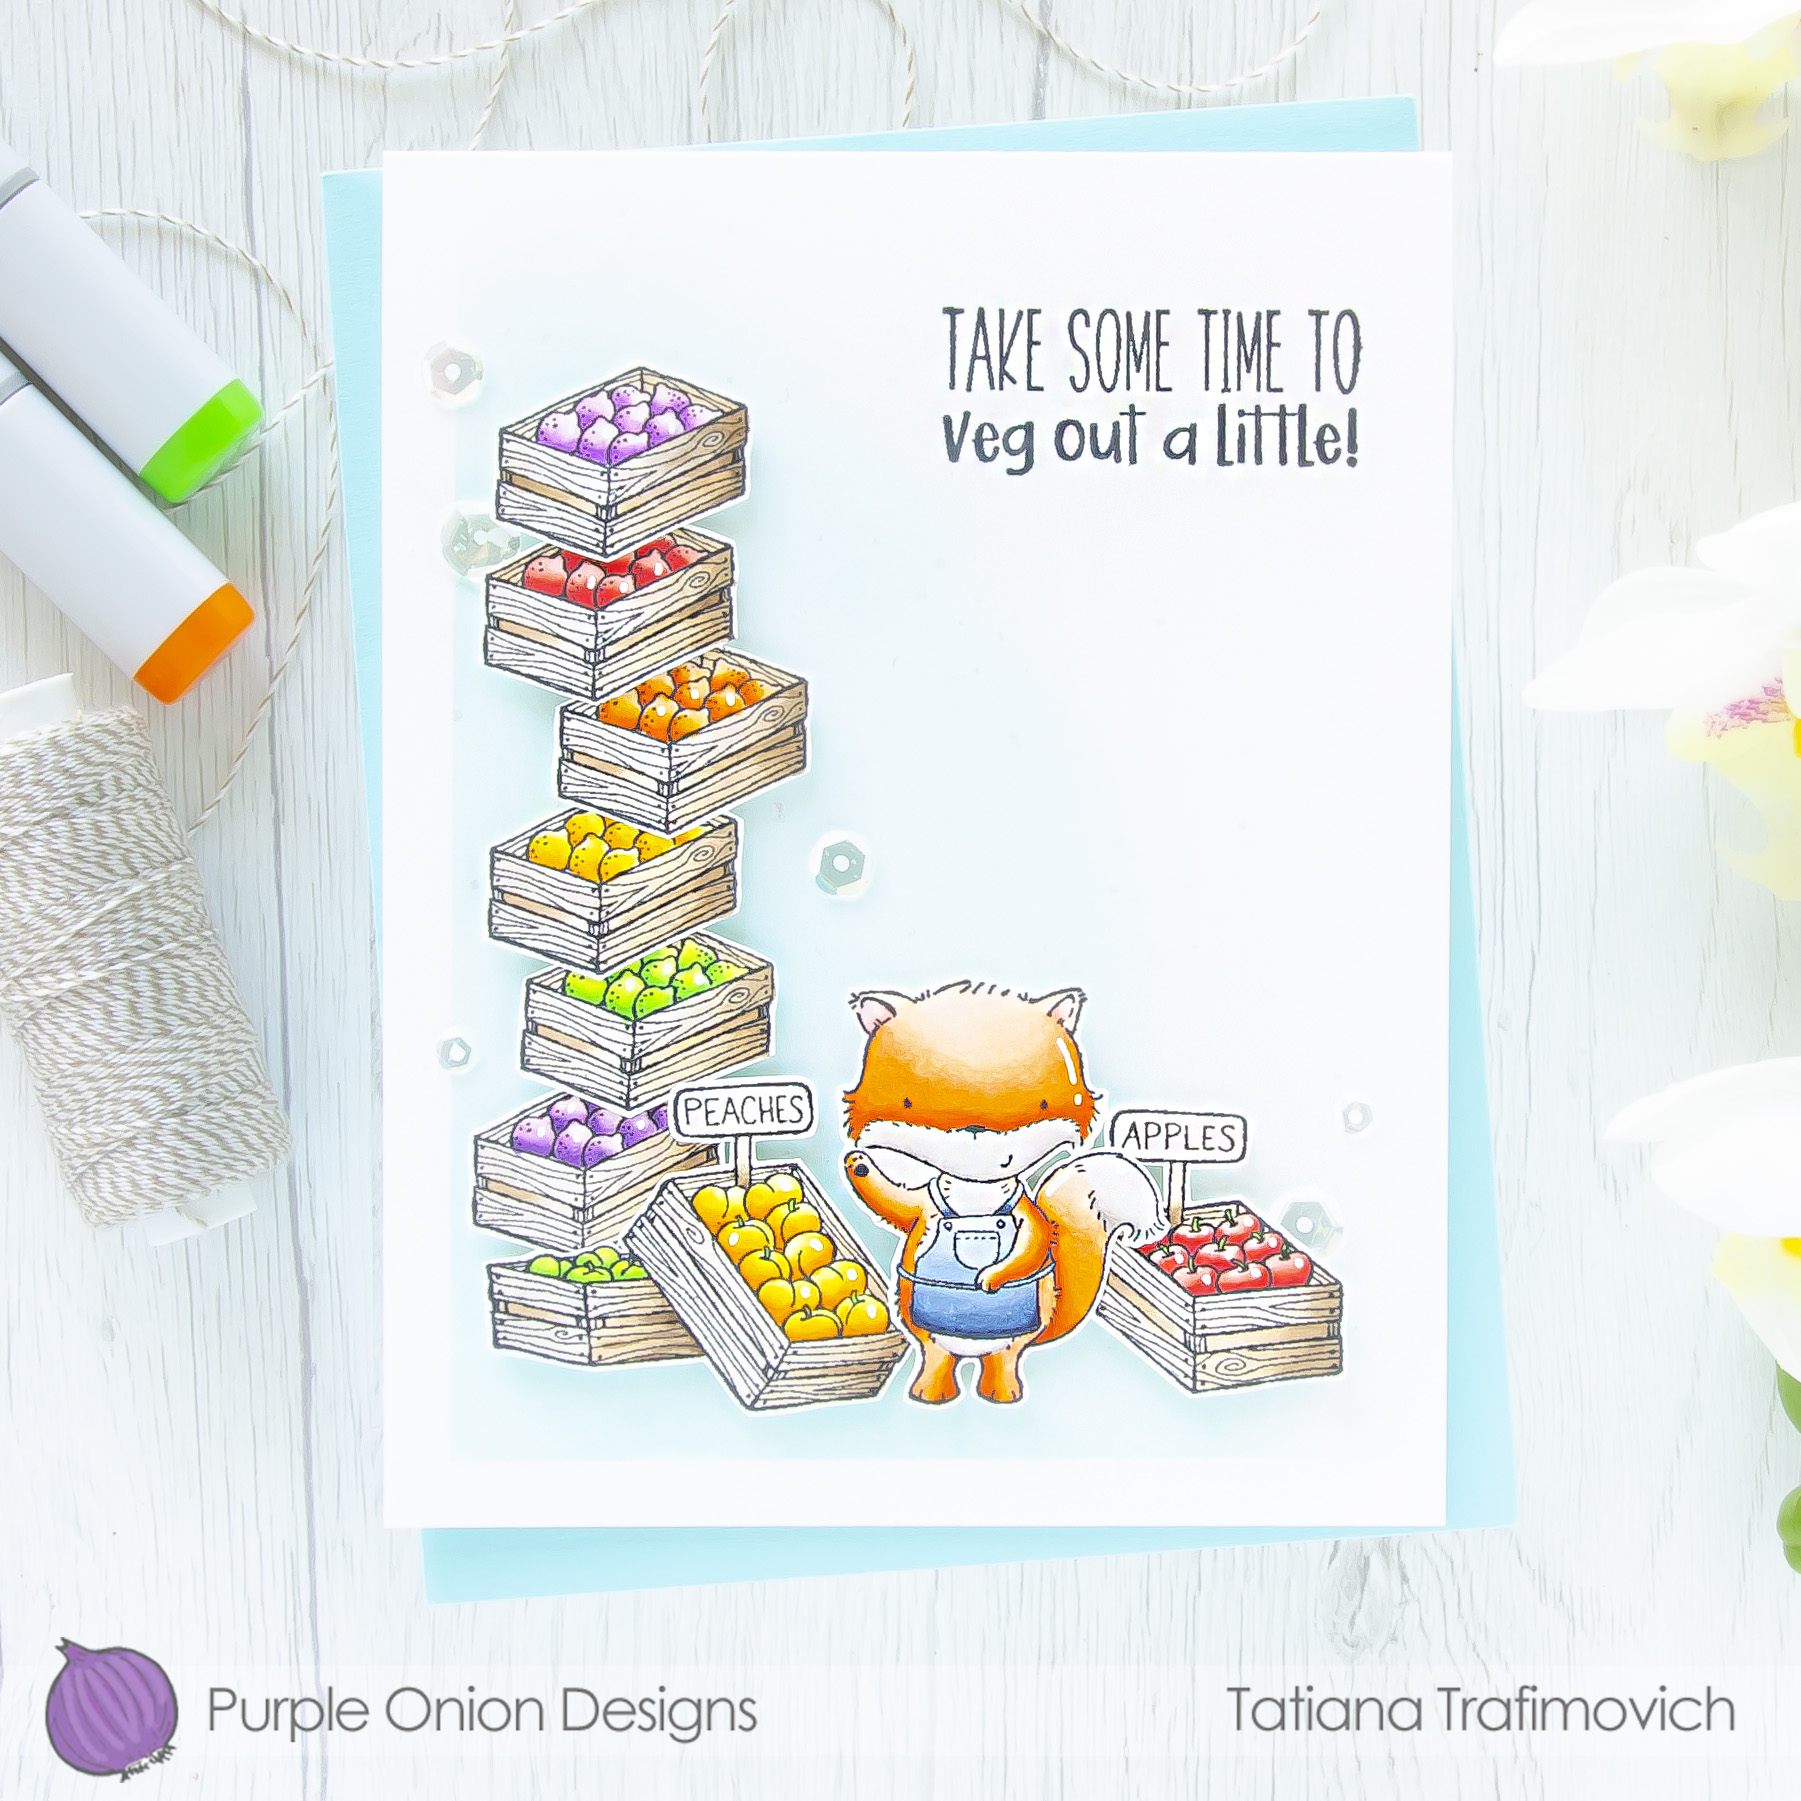 Take Some Time To Veg Out A Little #handmade card by Tatiana Trafimovich #tatianacraftandart - stamps by Purple Onion Designs